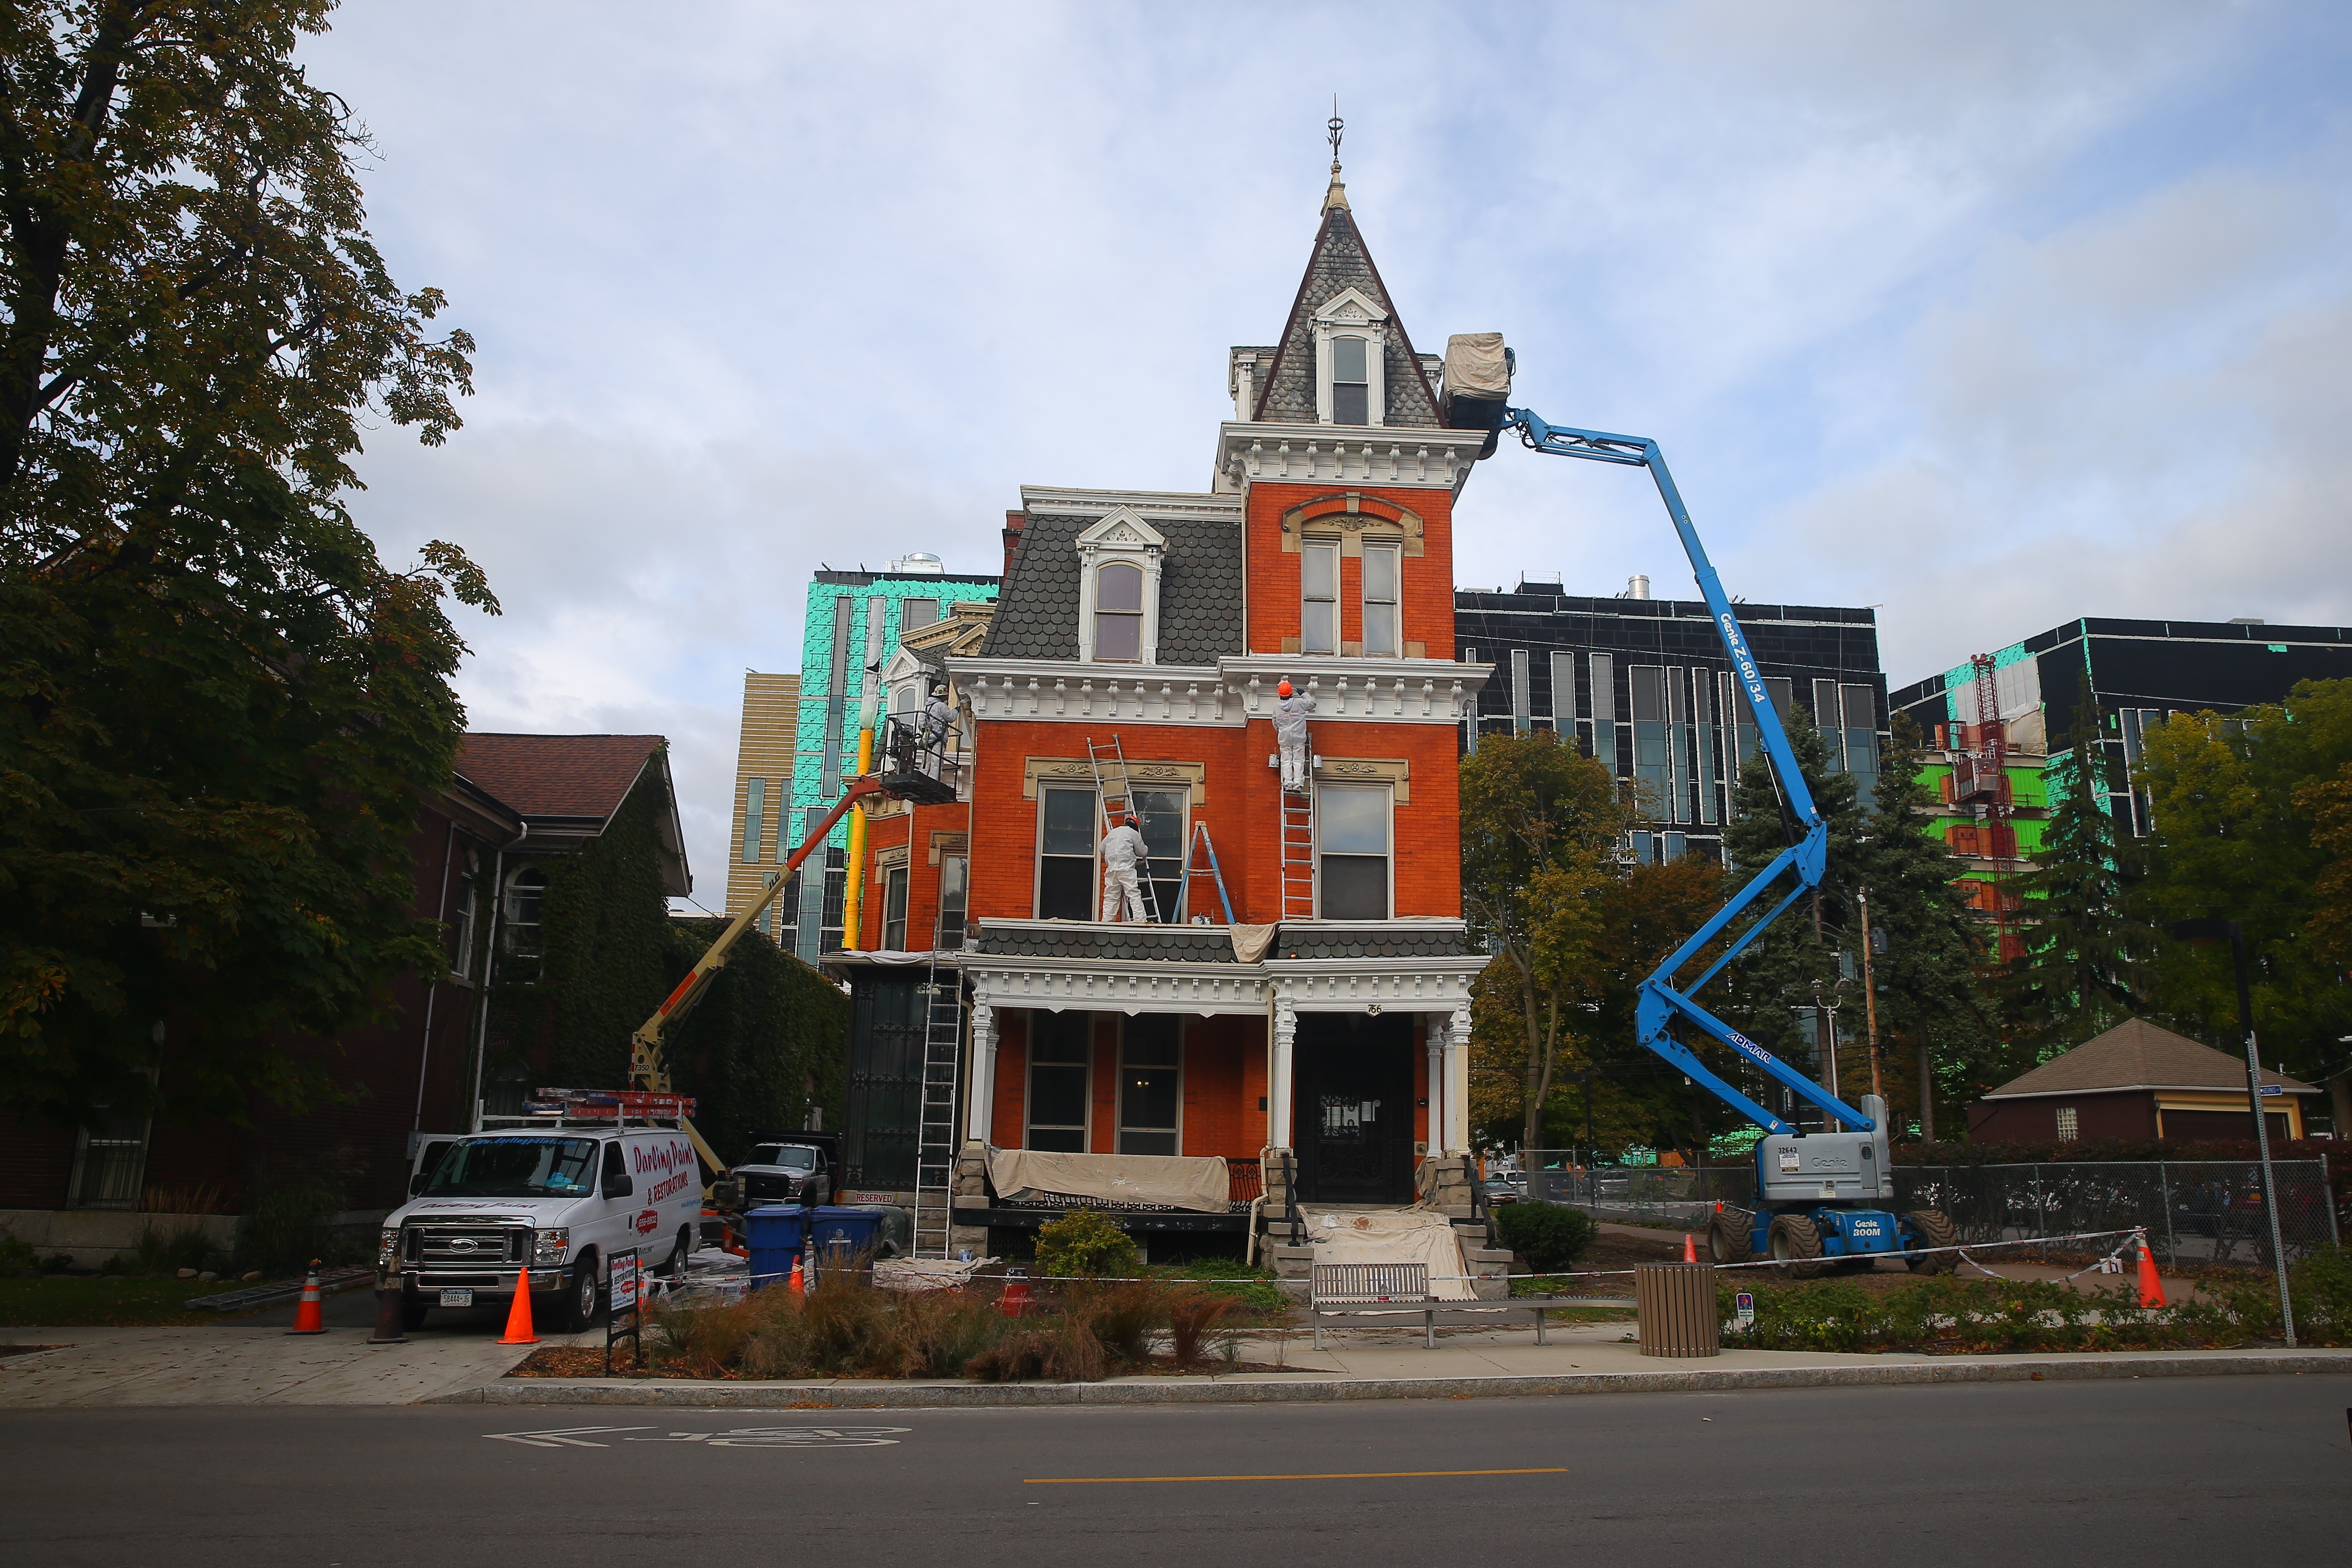 The August Feine House will be the 19th Decorators' Show House. Located at 766 Ellicott St., the 7,800-square-foot home is being restored as part of the Expansion Campaign for Kevin Guest House, located next door. Above,  workers from Darling Paint worked on the exterior  on  Oct. 26, 2016.  (John Hickey/Buffalo News file photo)